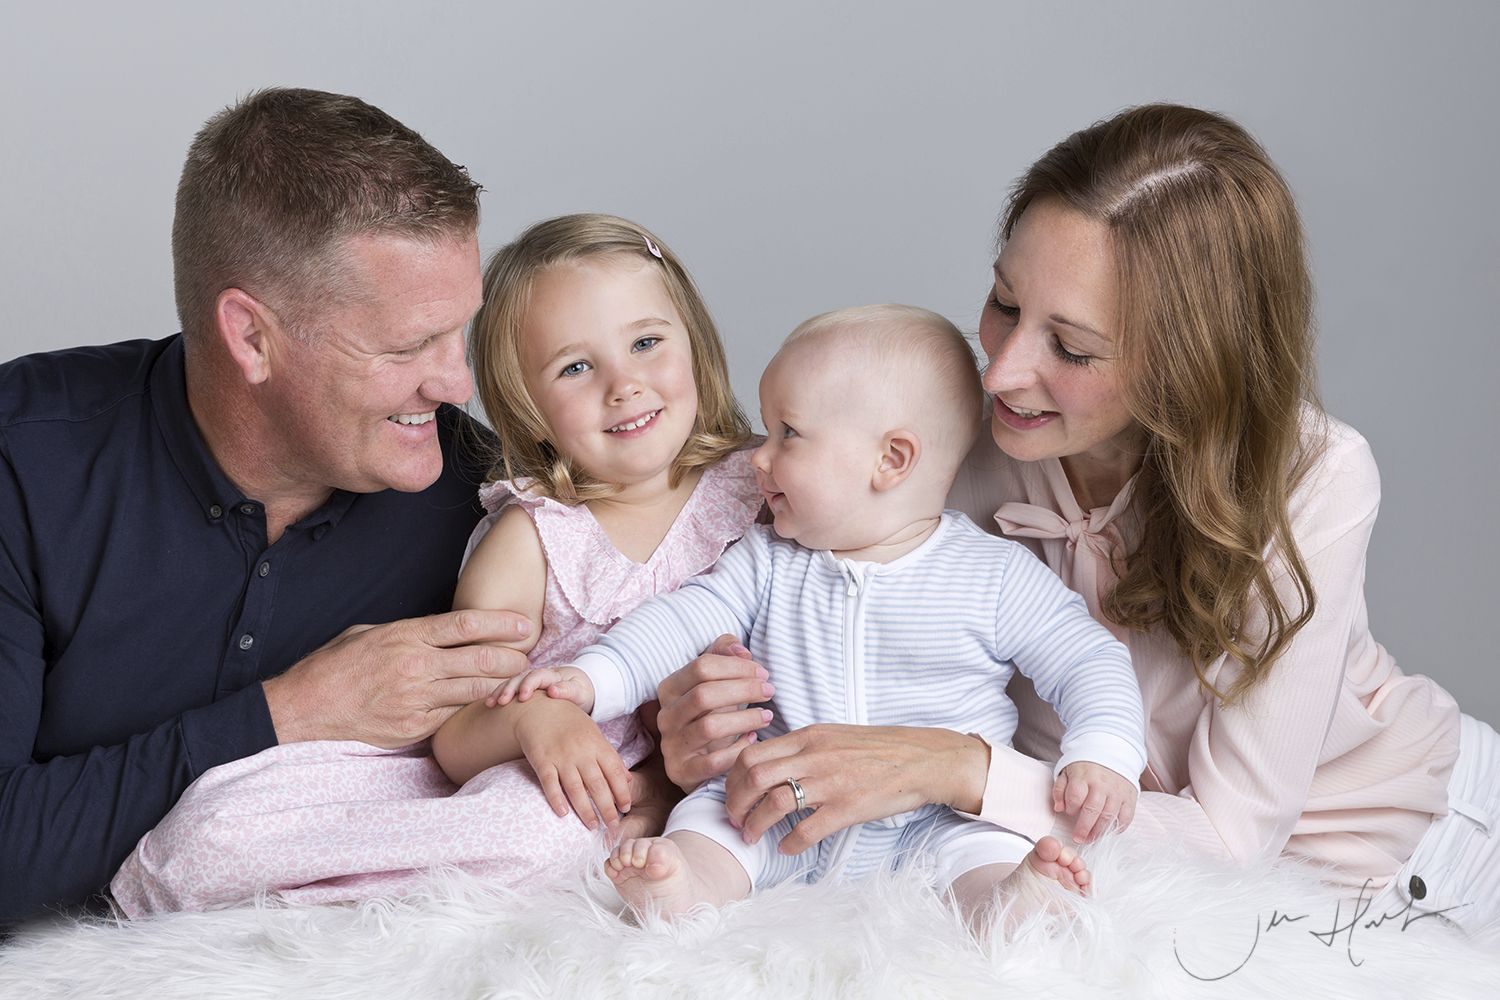 Children-Family-Studio-Photography-Jen-Hart-Freya-Oscar 12September19_005